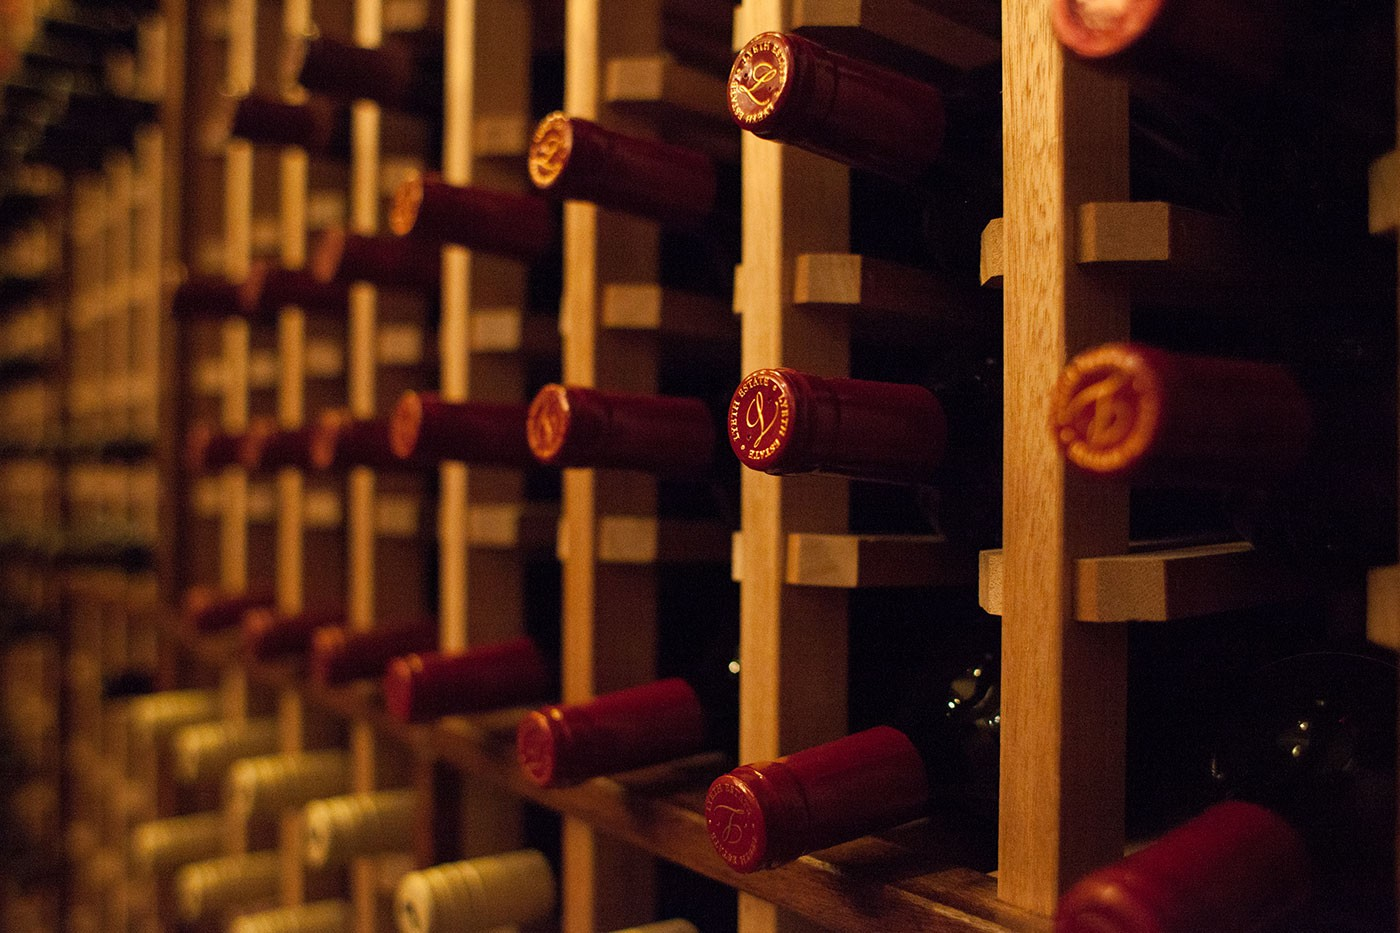 wine cellar using get wines direct coupons